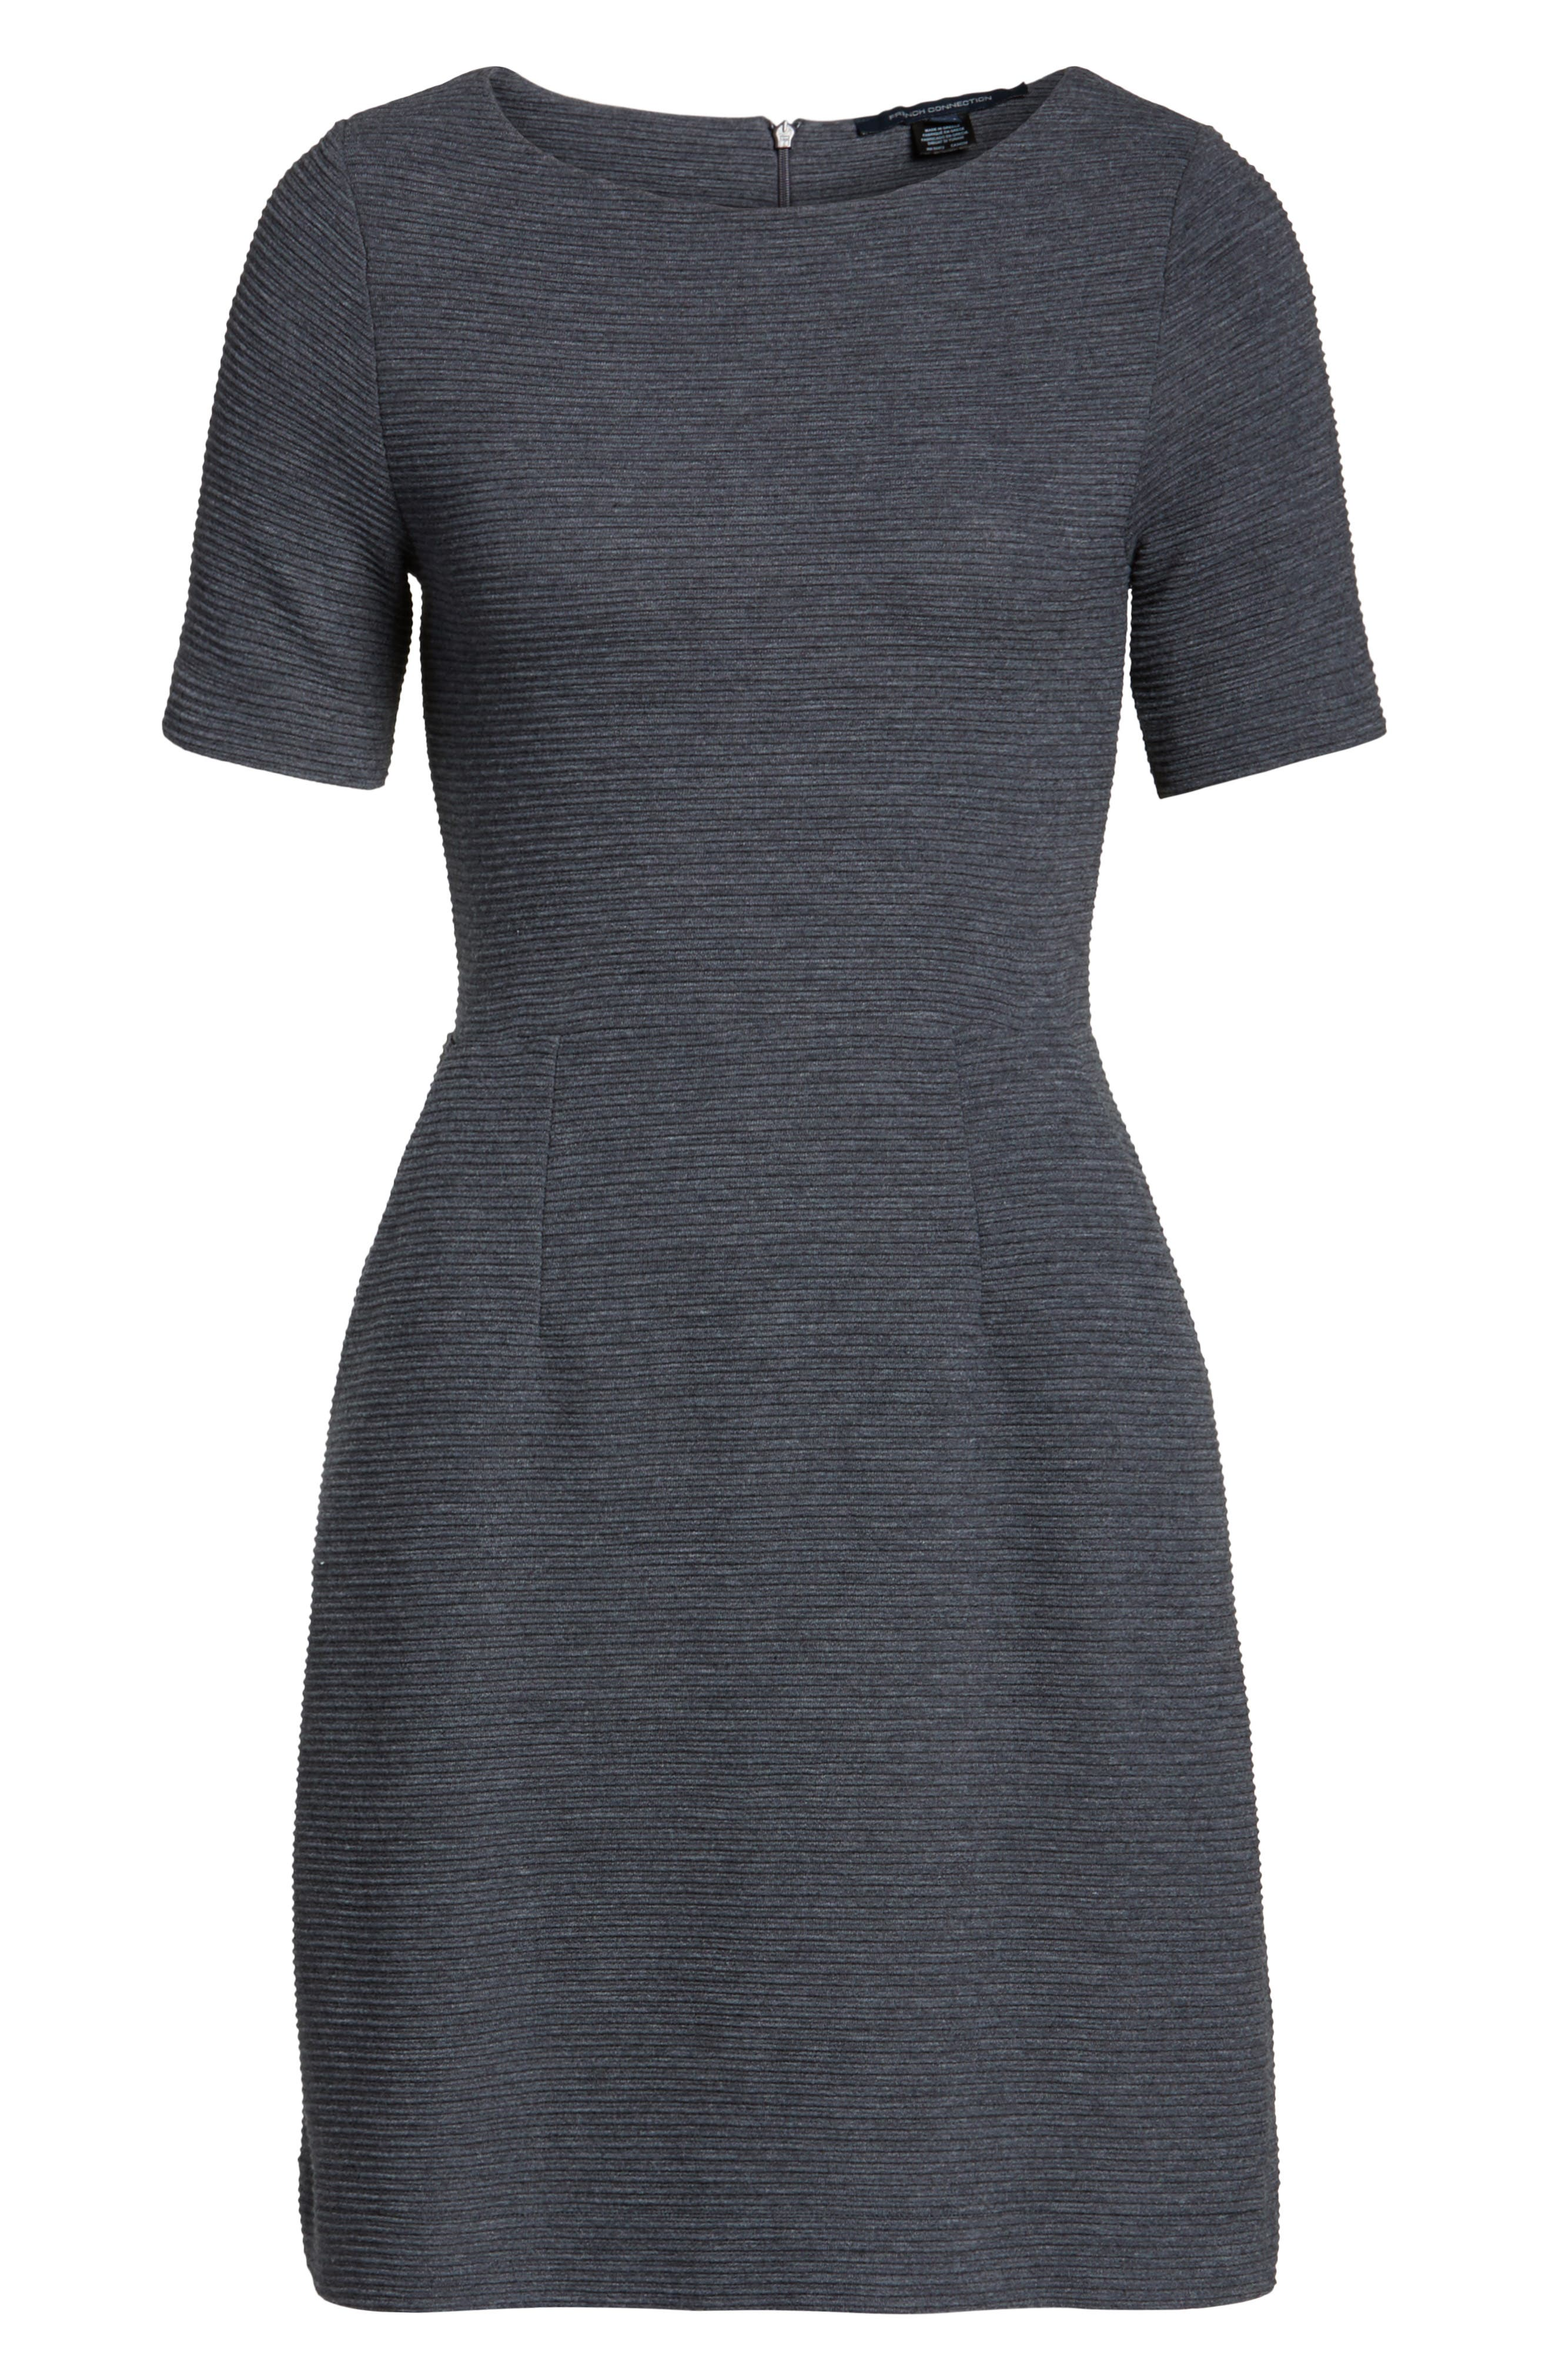 Sudan Fit & Flare Dress,                         Main,                         color, Dark Grey